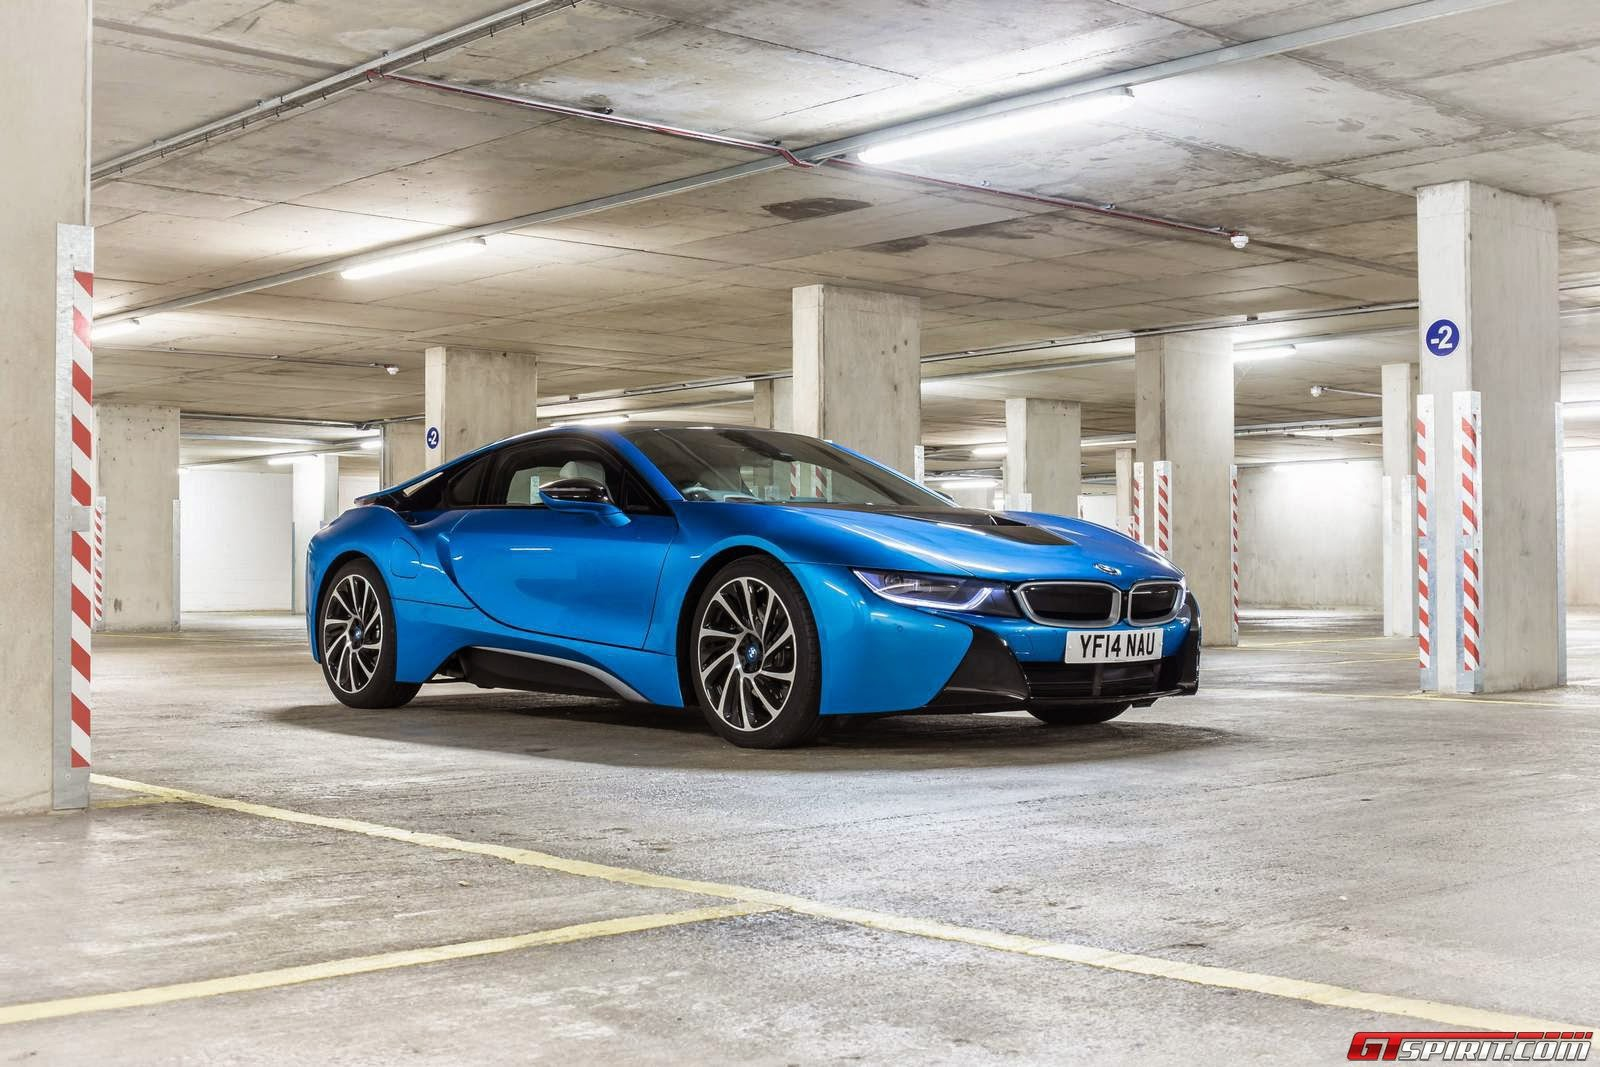 Bmw I8 Blue Hd Wallpaper Galery Car Wallpaper